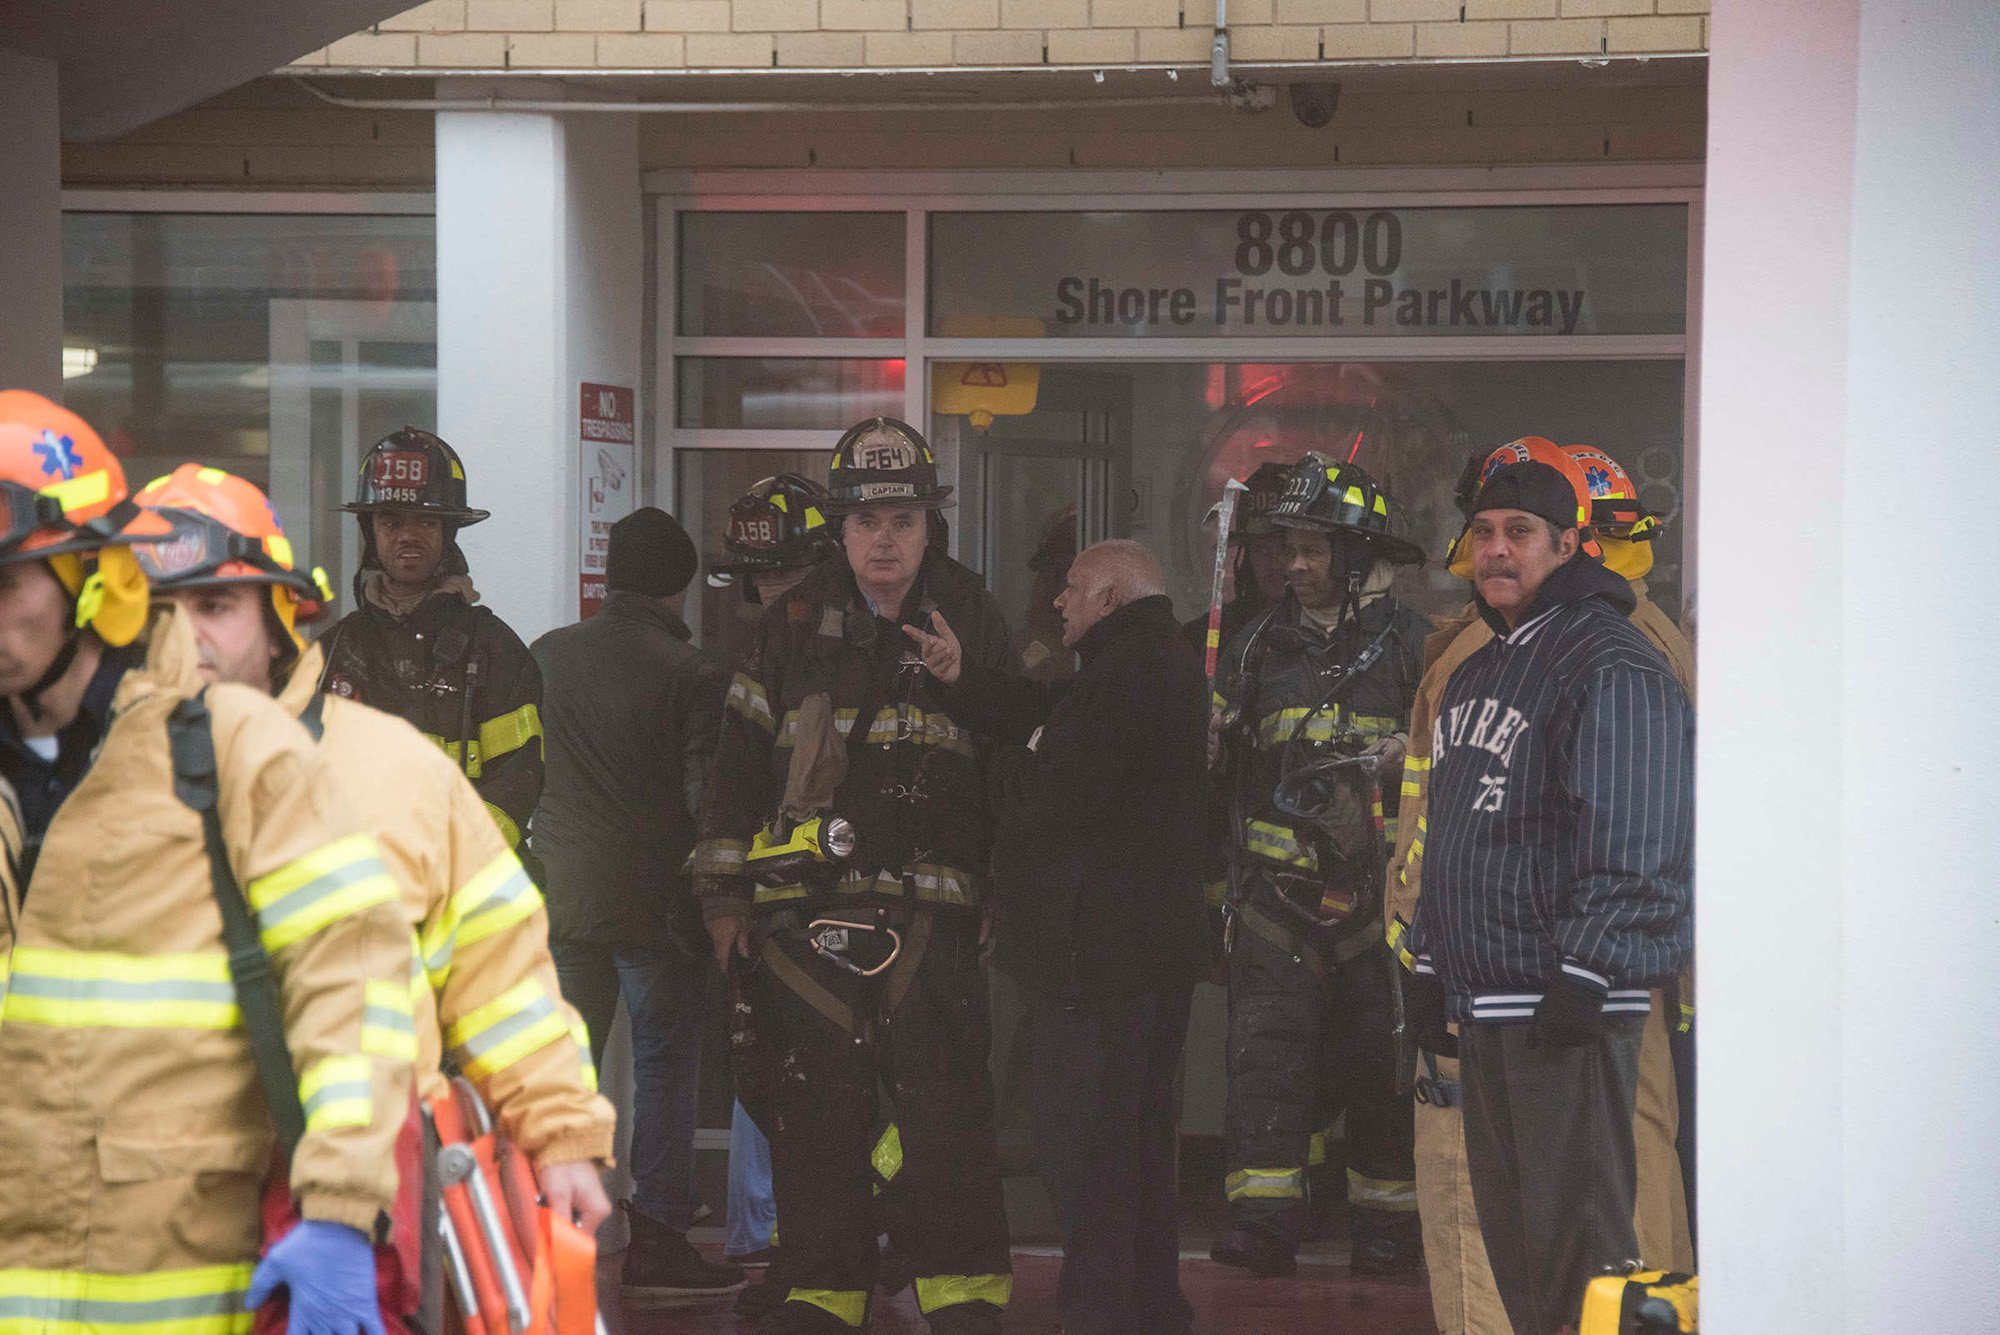 17 injured in Queens high-rise fire